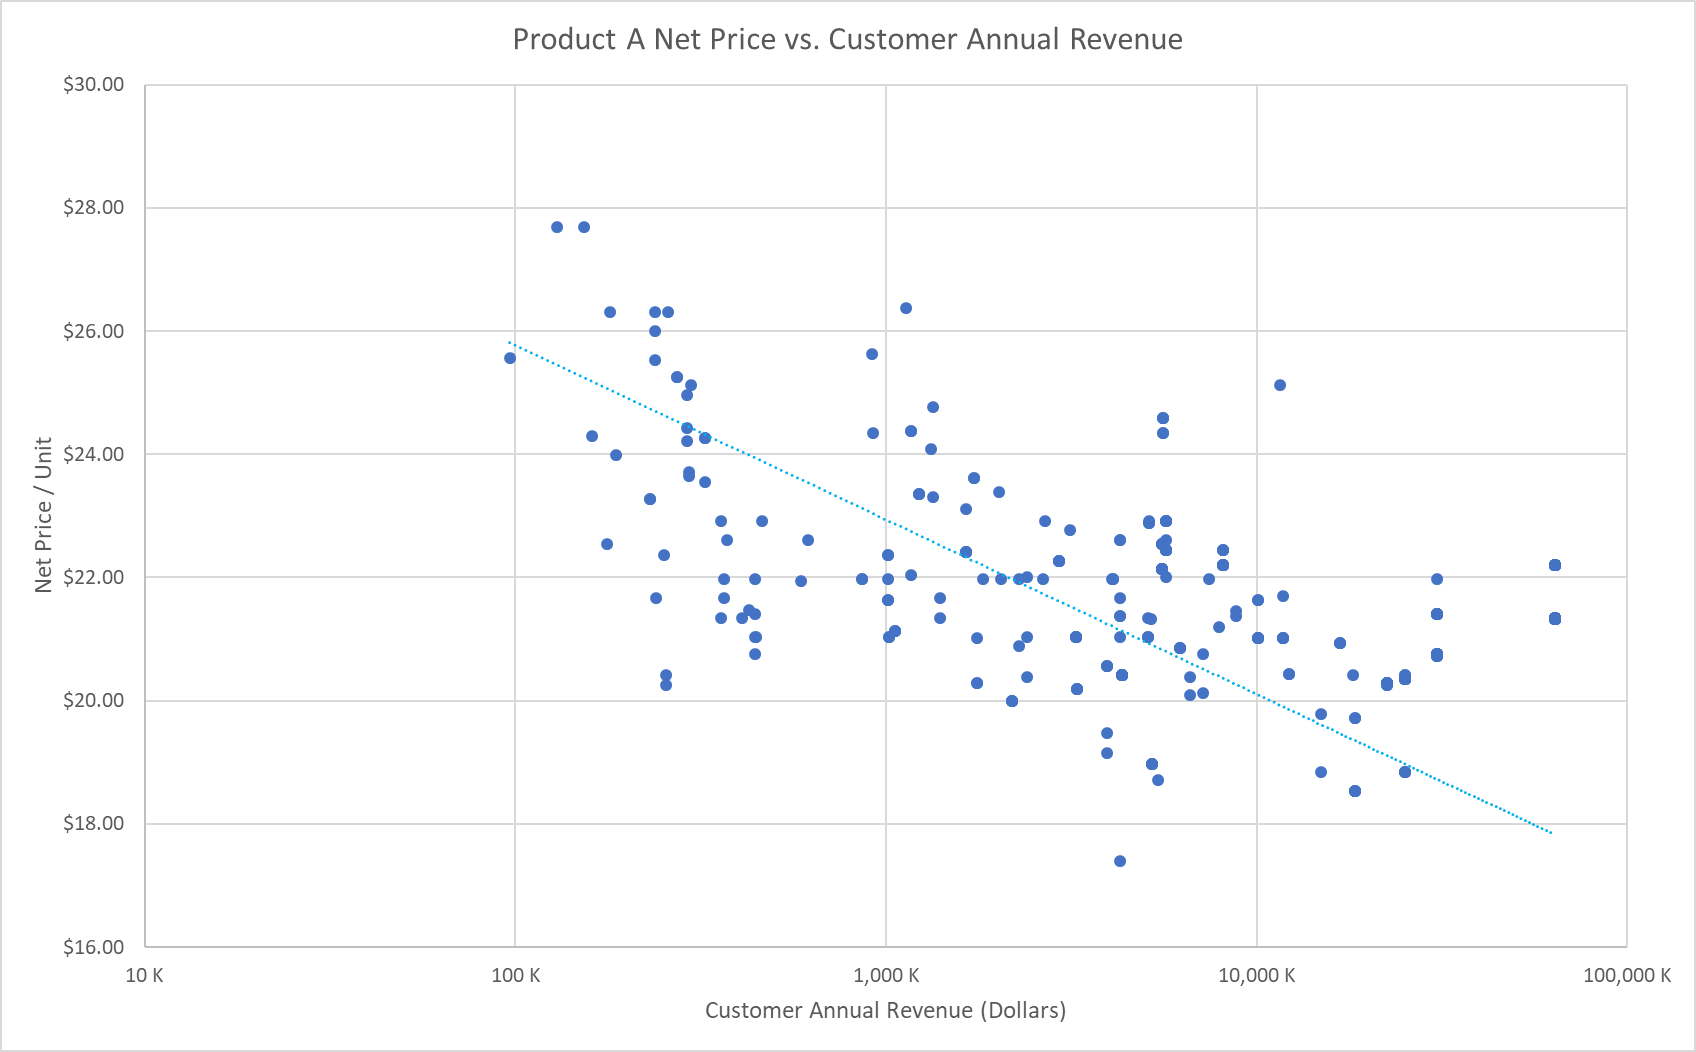 Pricing Analytics: Net Price vs. Customer Annual Revenue